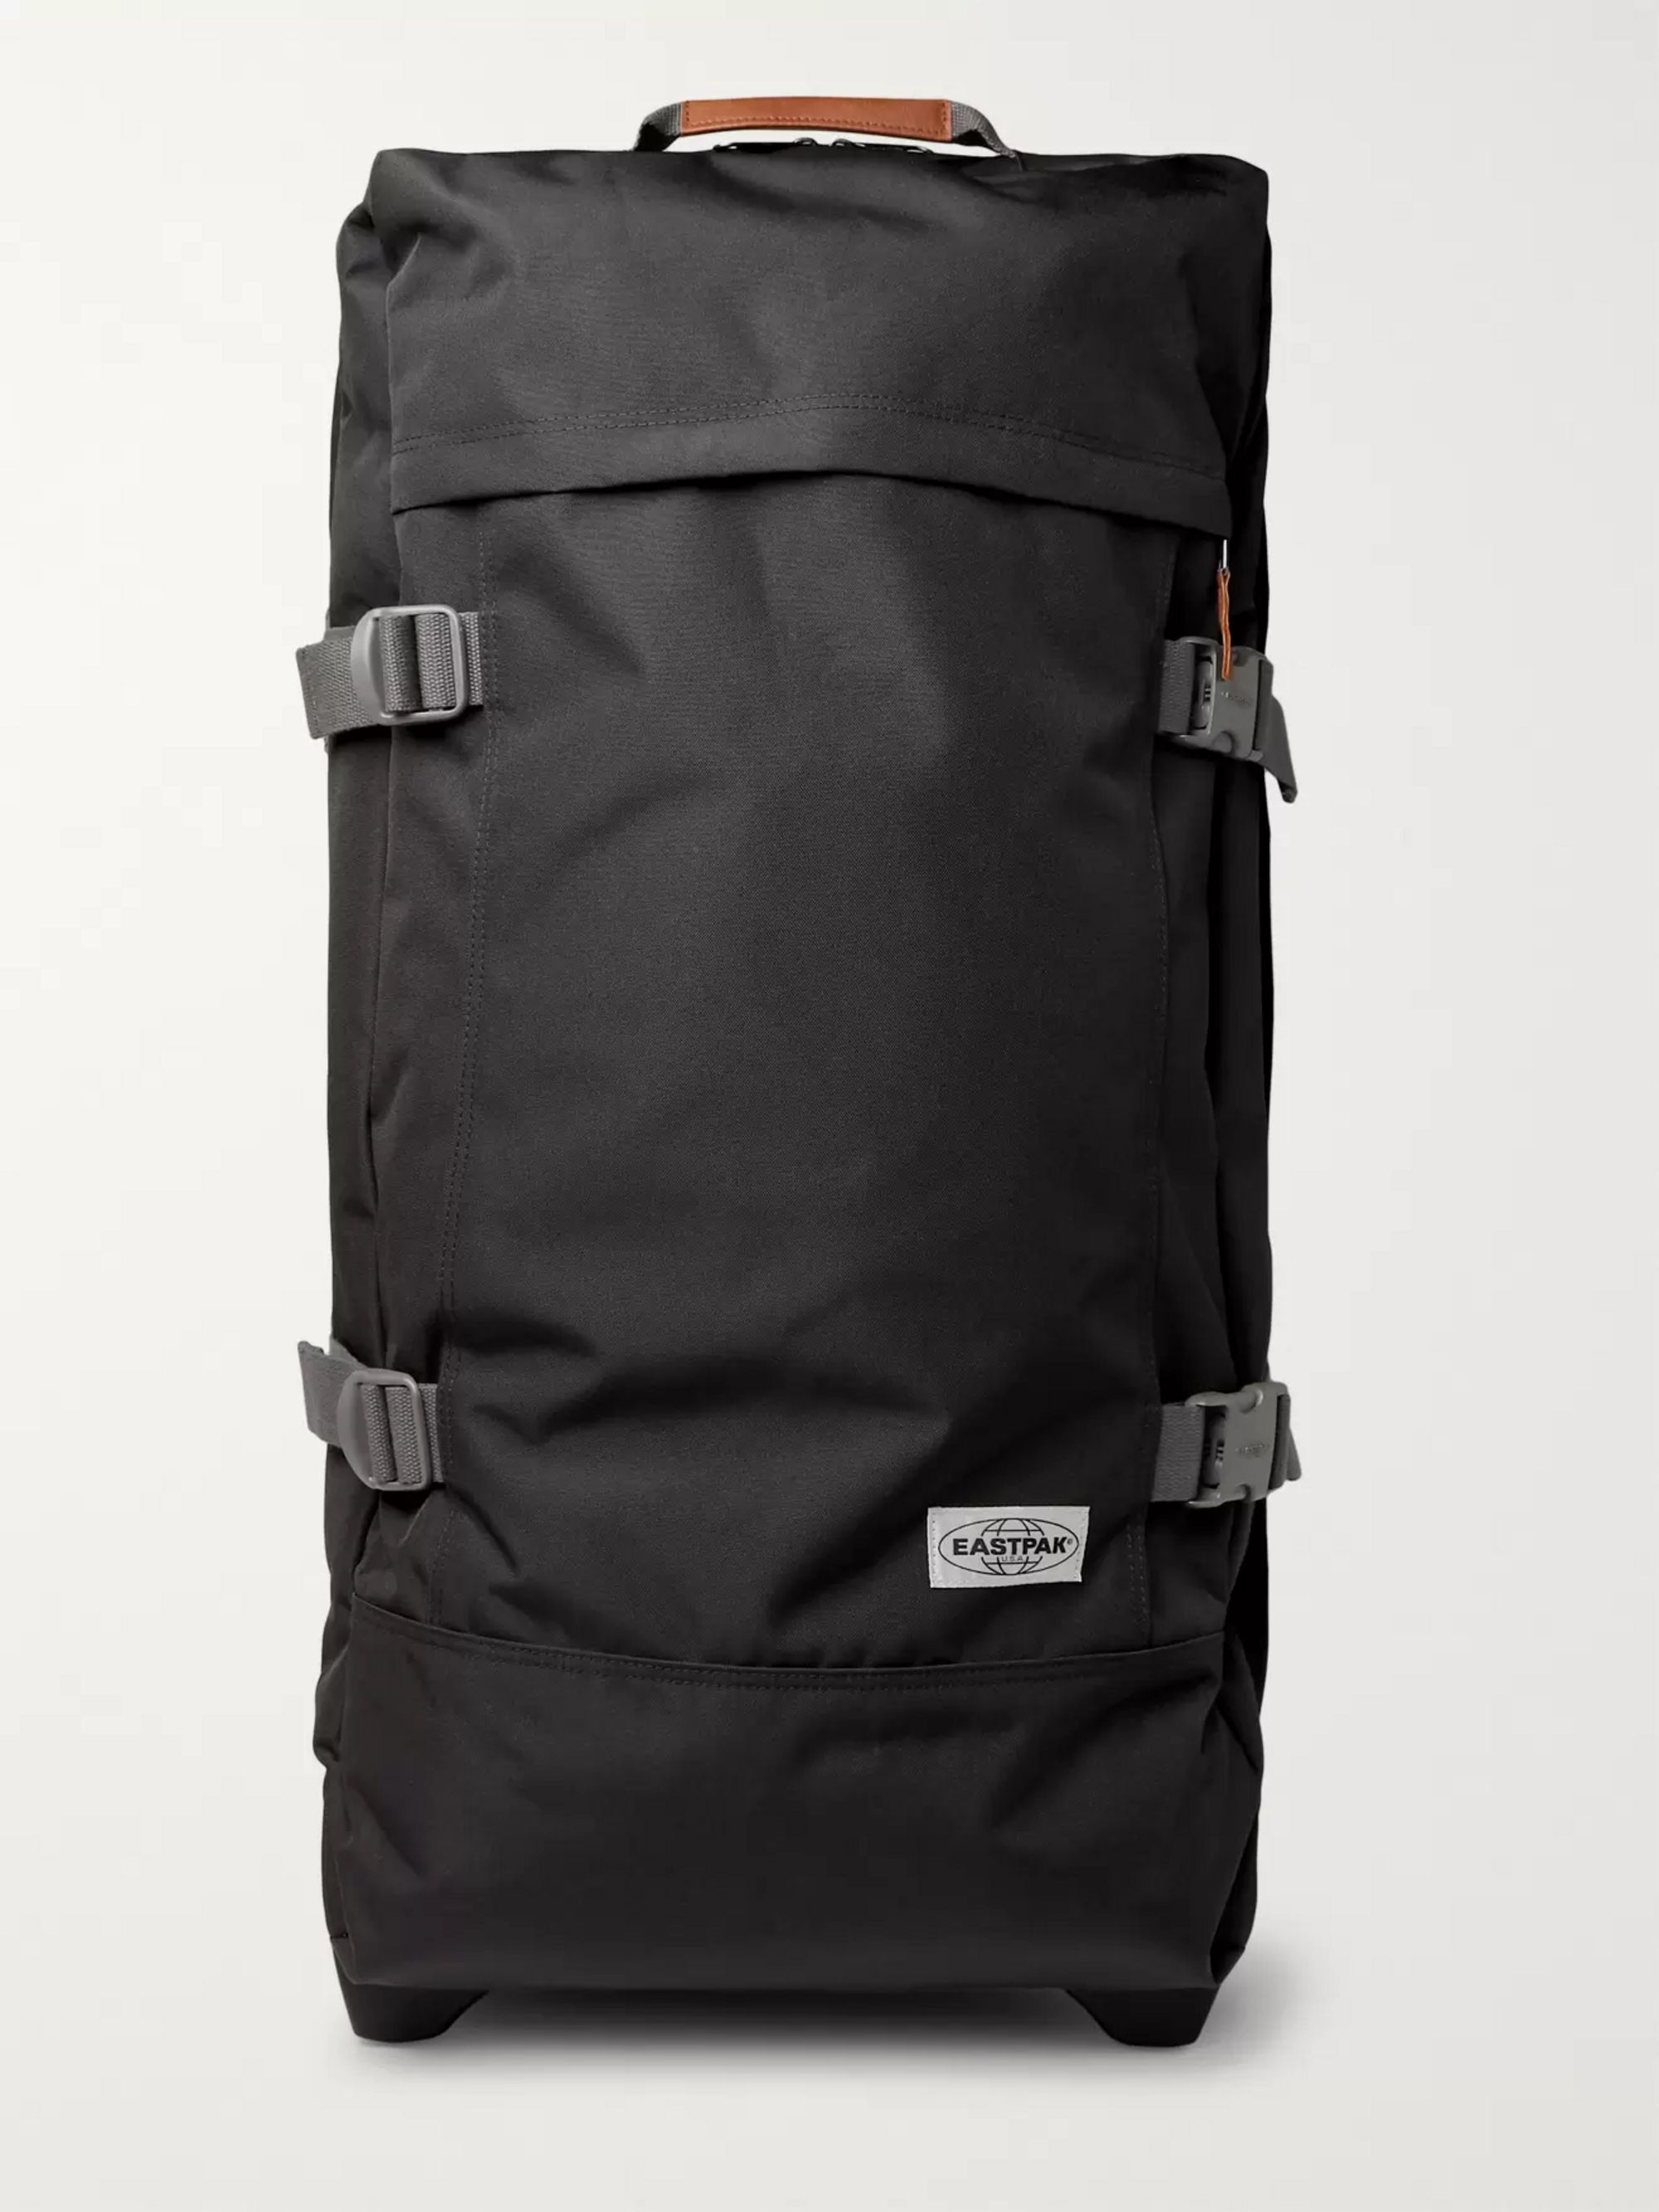 Eastpak Tranverz L 79cm Canvas Suitcase